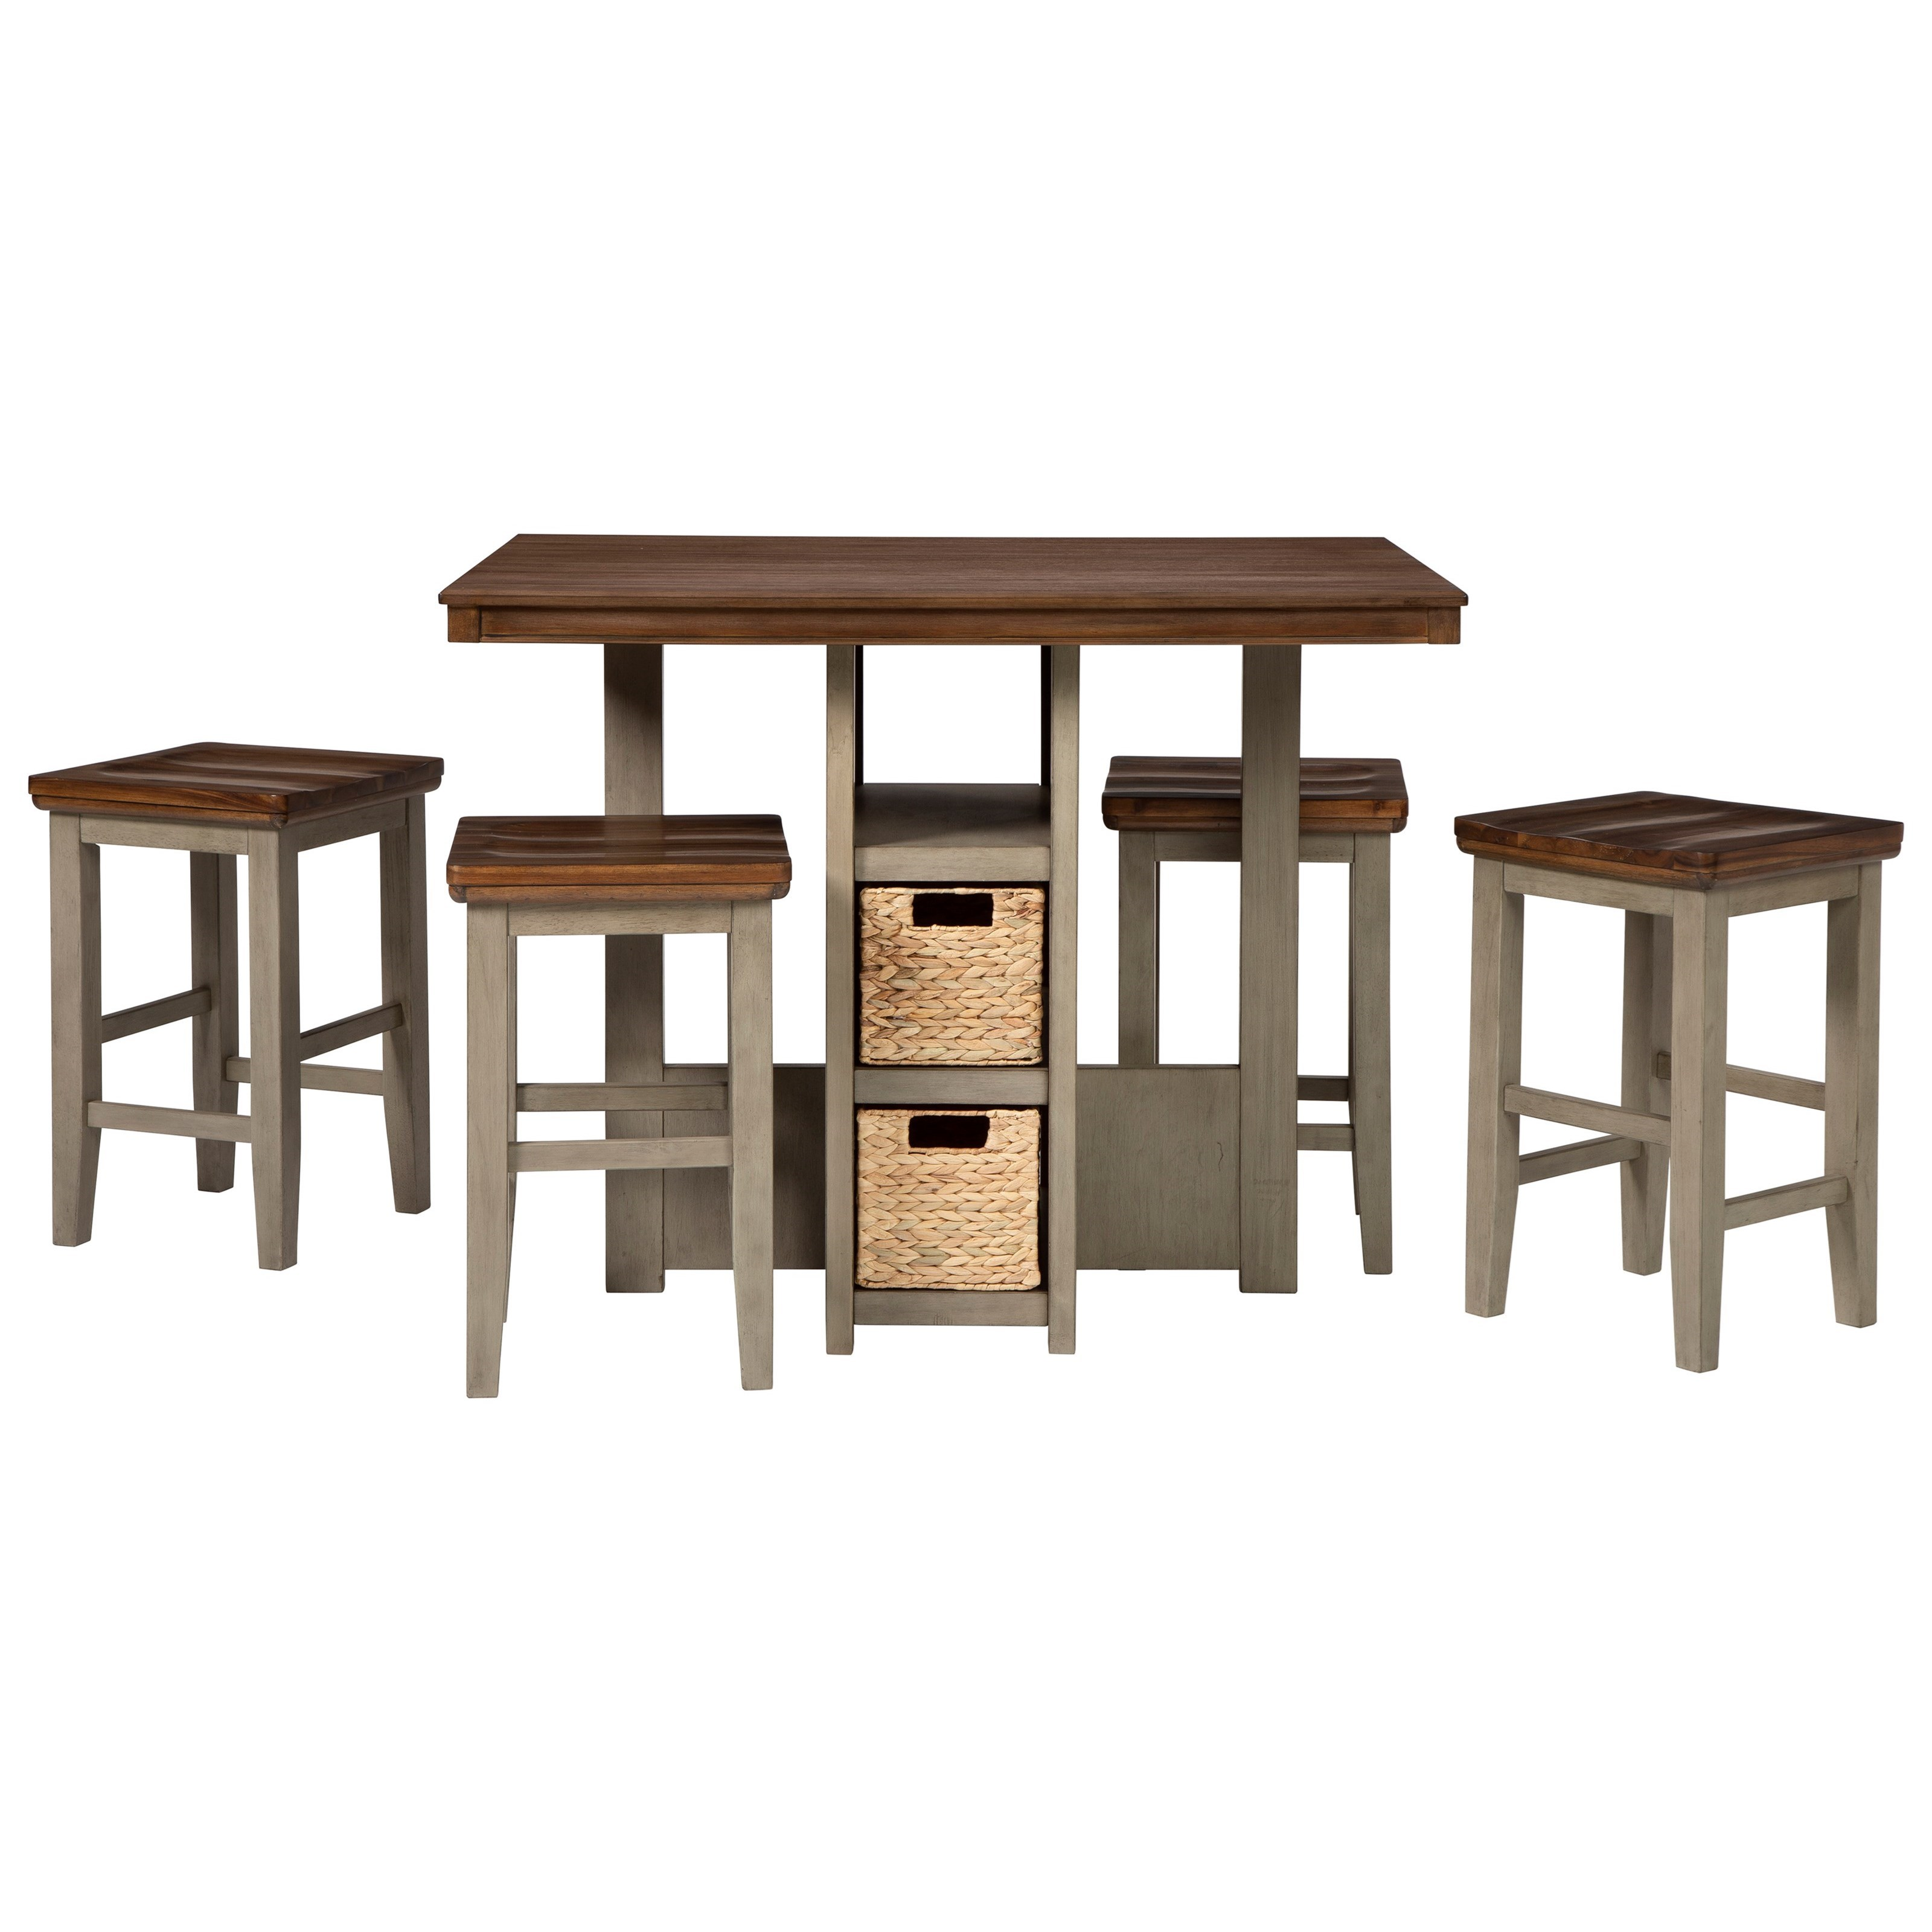 Lettner 5-Piece Rectangular Counter Table Set by Signature Design by Ashley at Dream Home Interiors